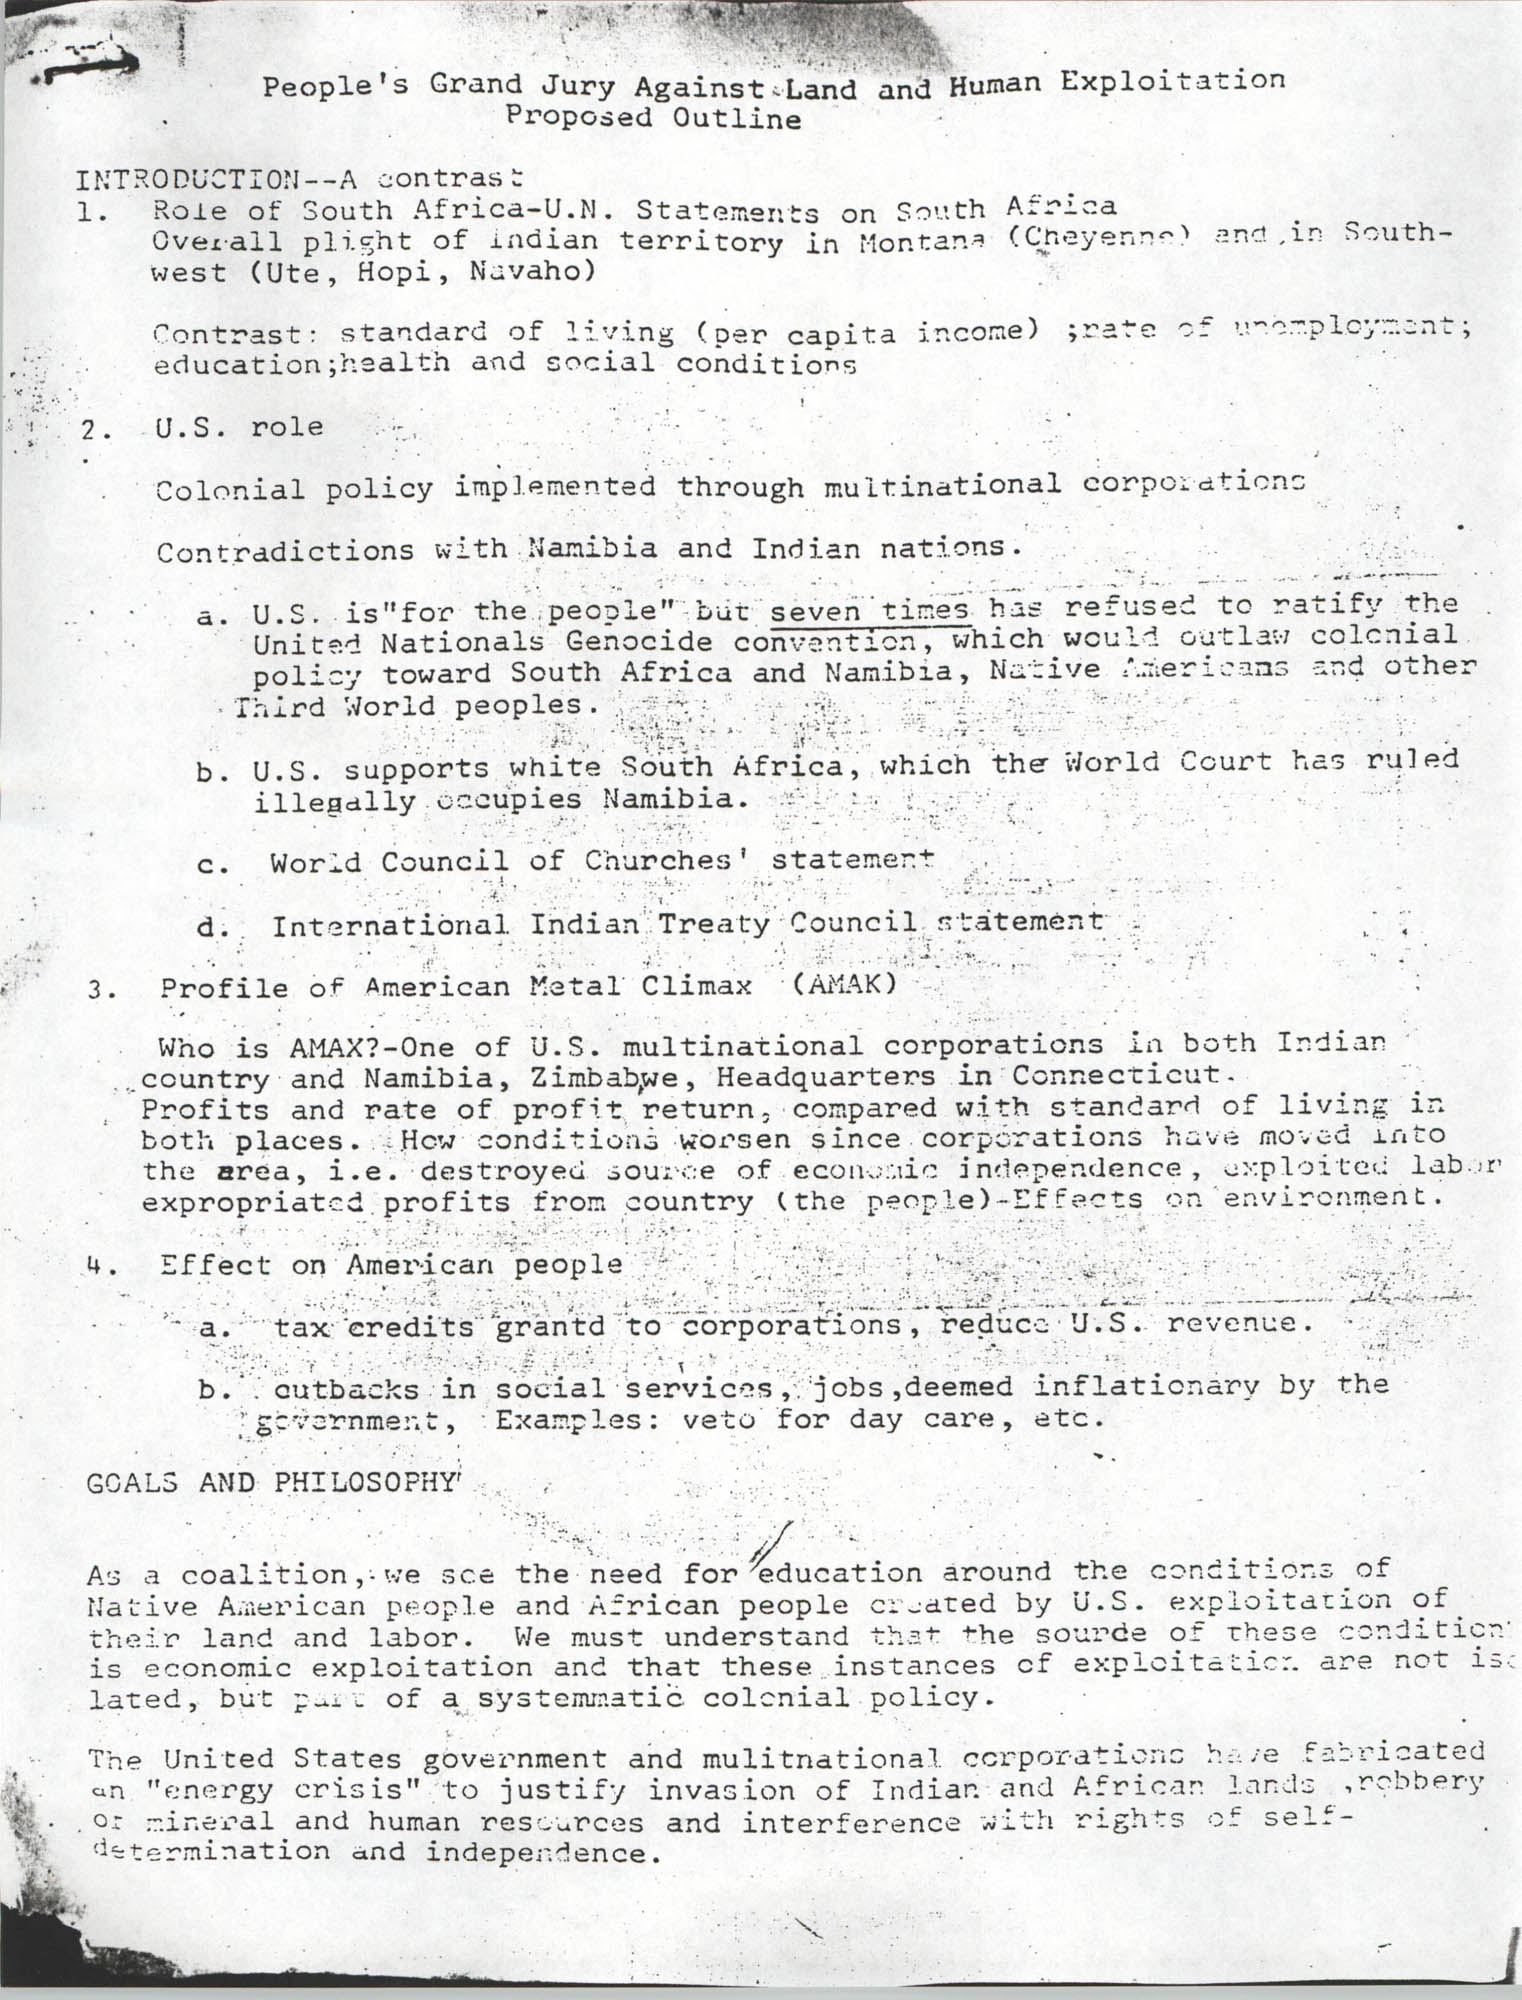 People's Grand Jury Against Land and Human Exploitation Proposed Outline, Page 1